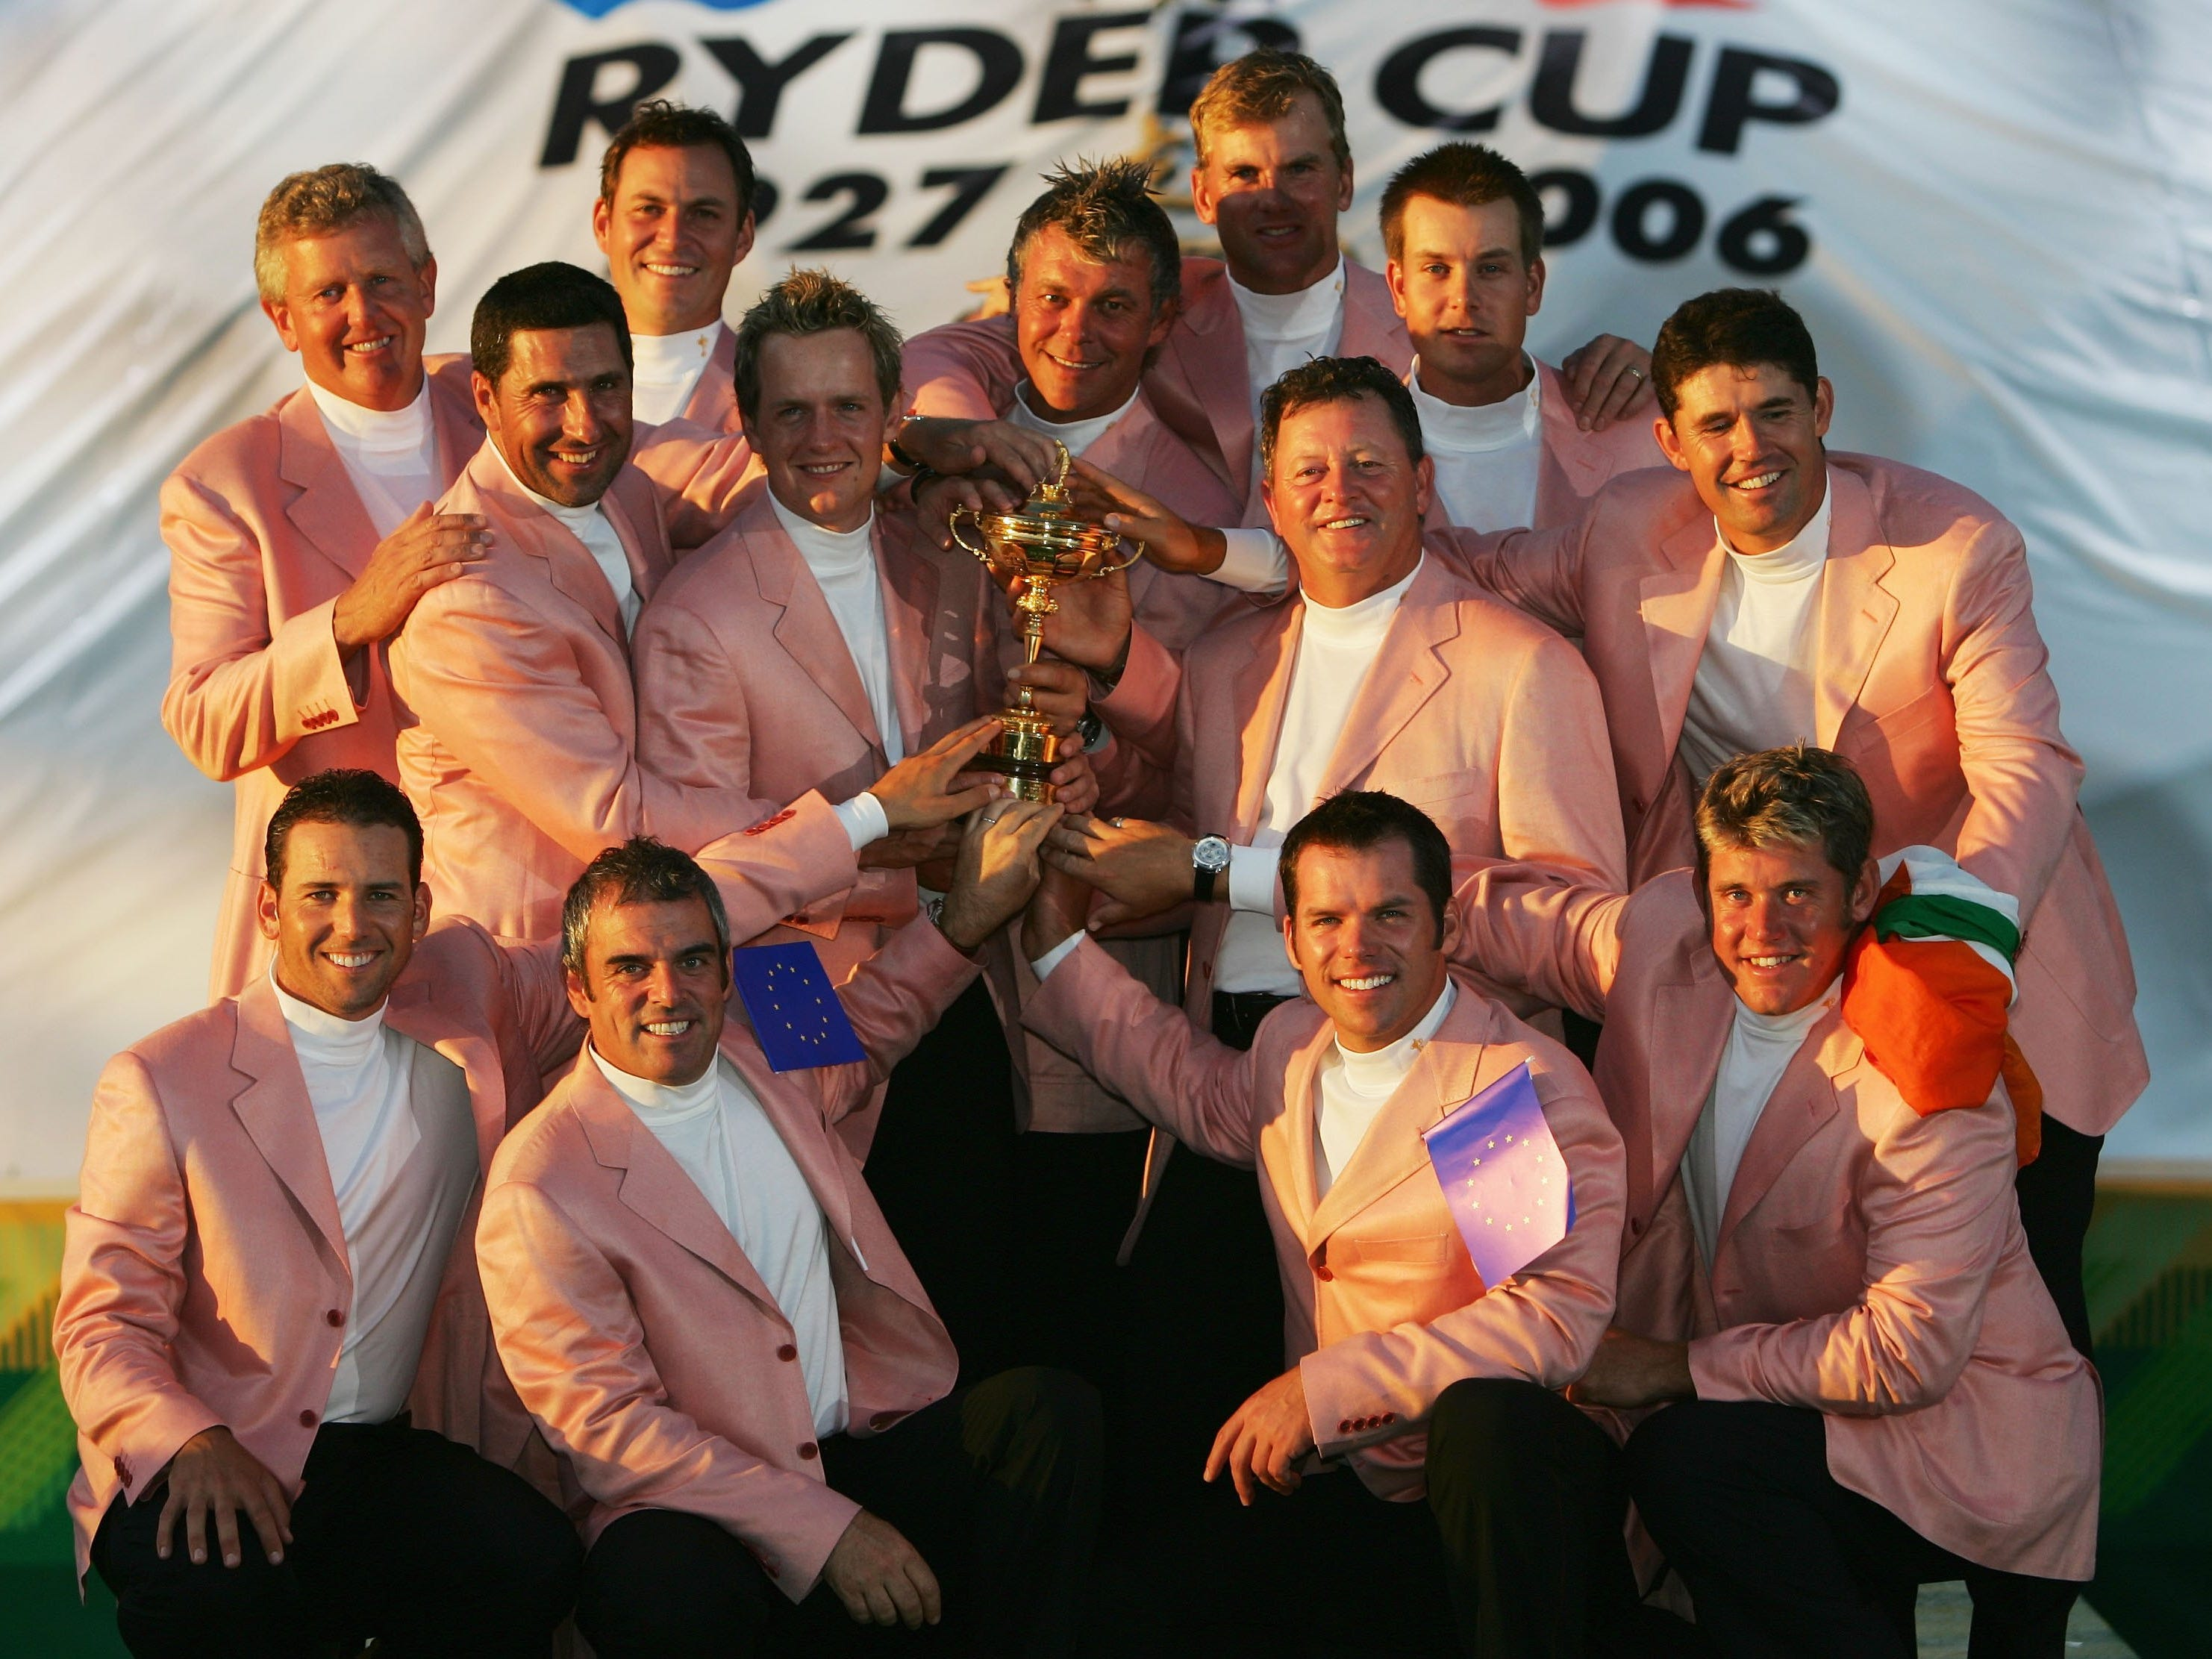 Team Europe, 2006: The team poses with the Ryder Cup trophy during the closing ceremony after routing Team USA 18.5 - 9.5.